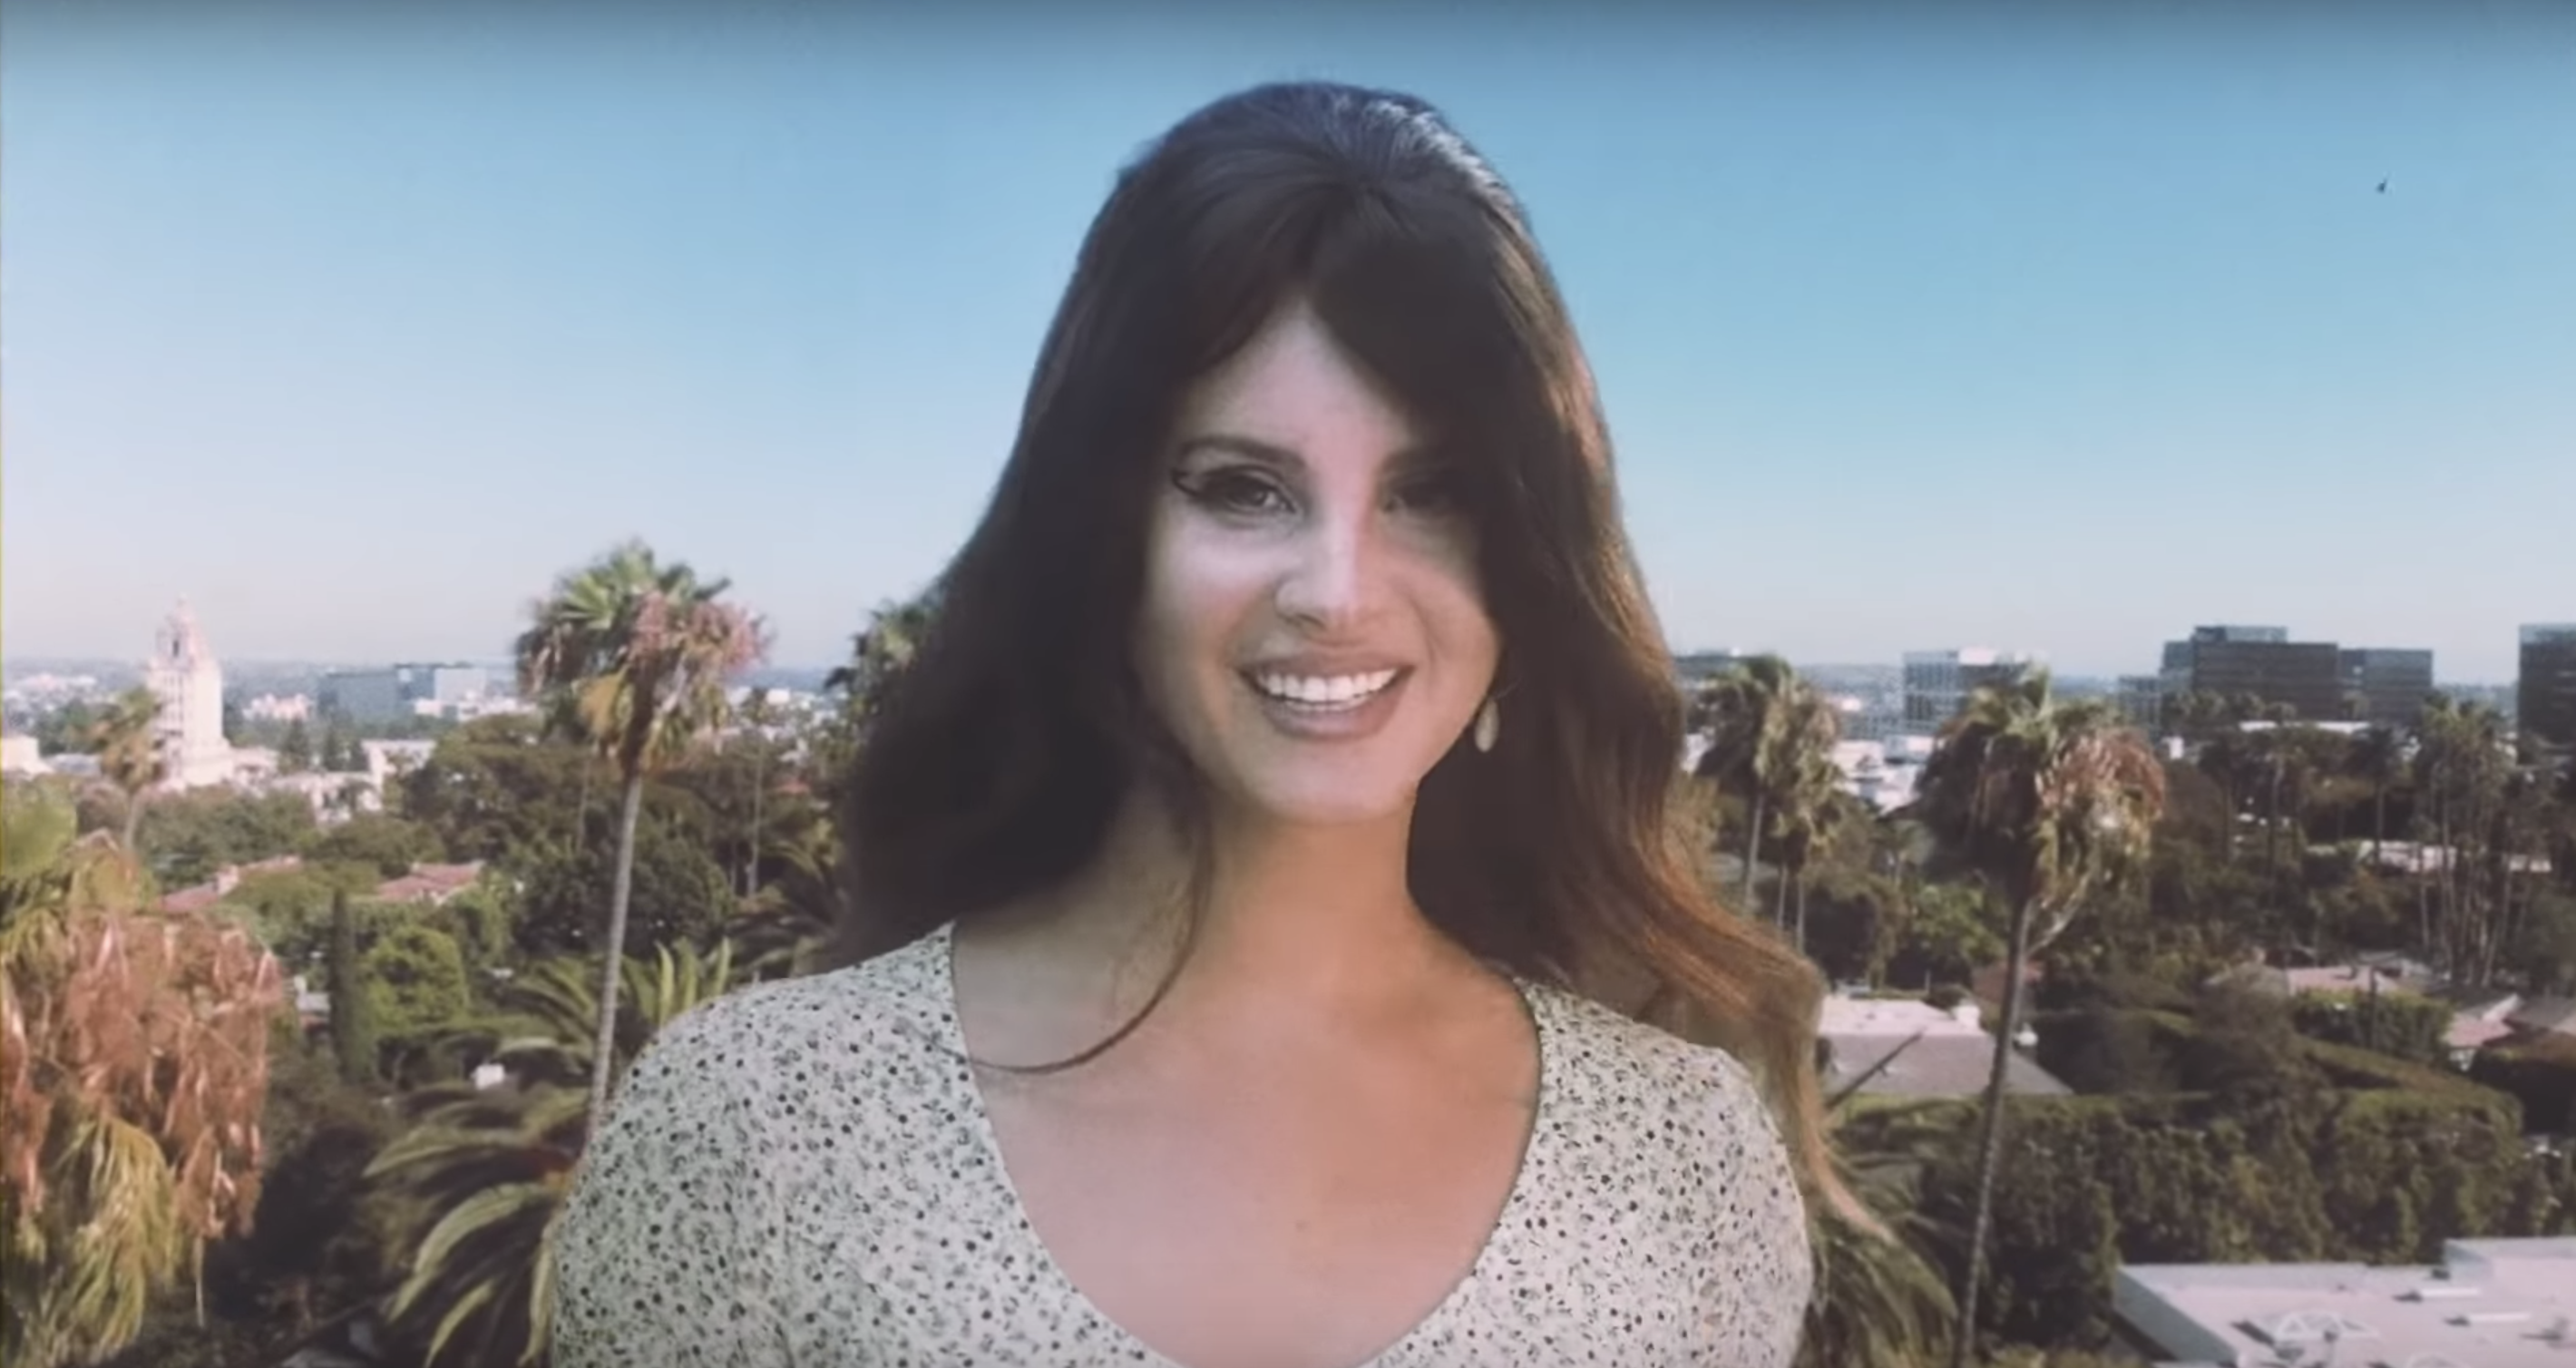 The Interview Editors On Norman Fucking Rockwell By Lana Del Rey